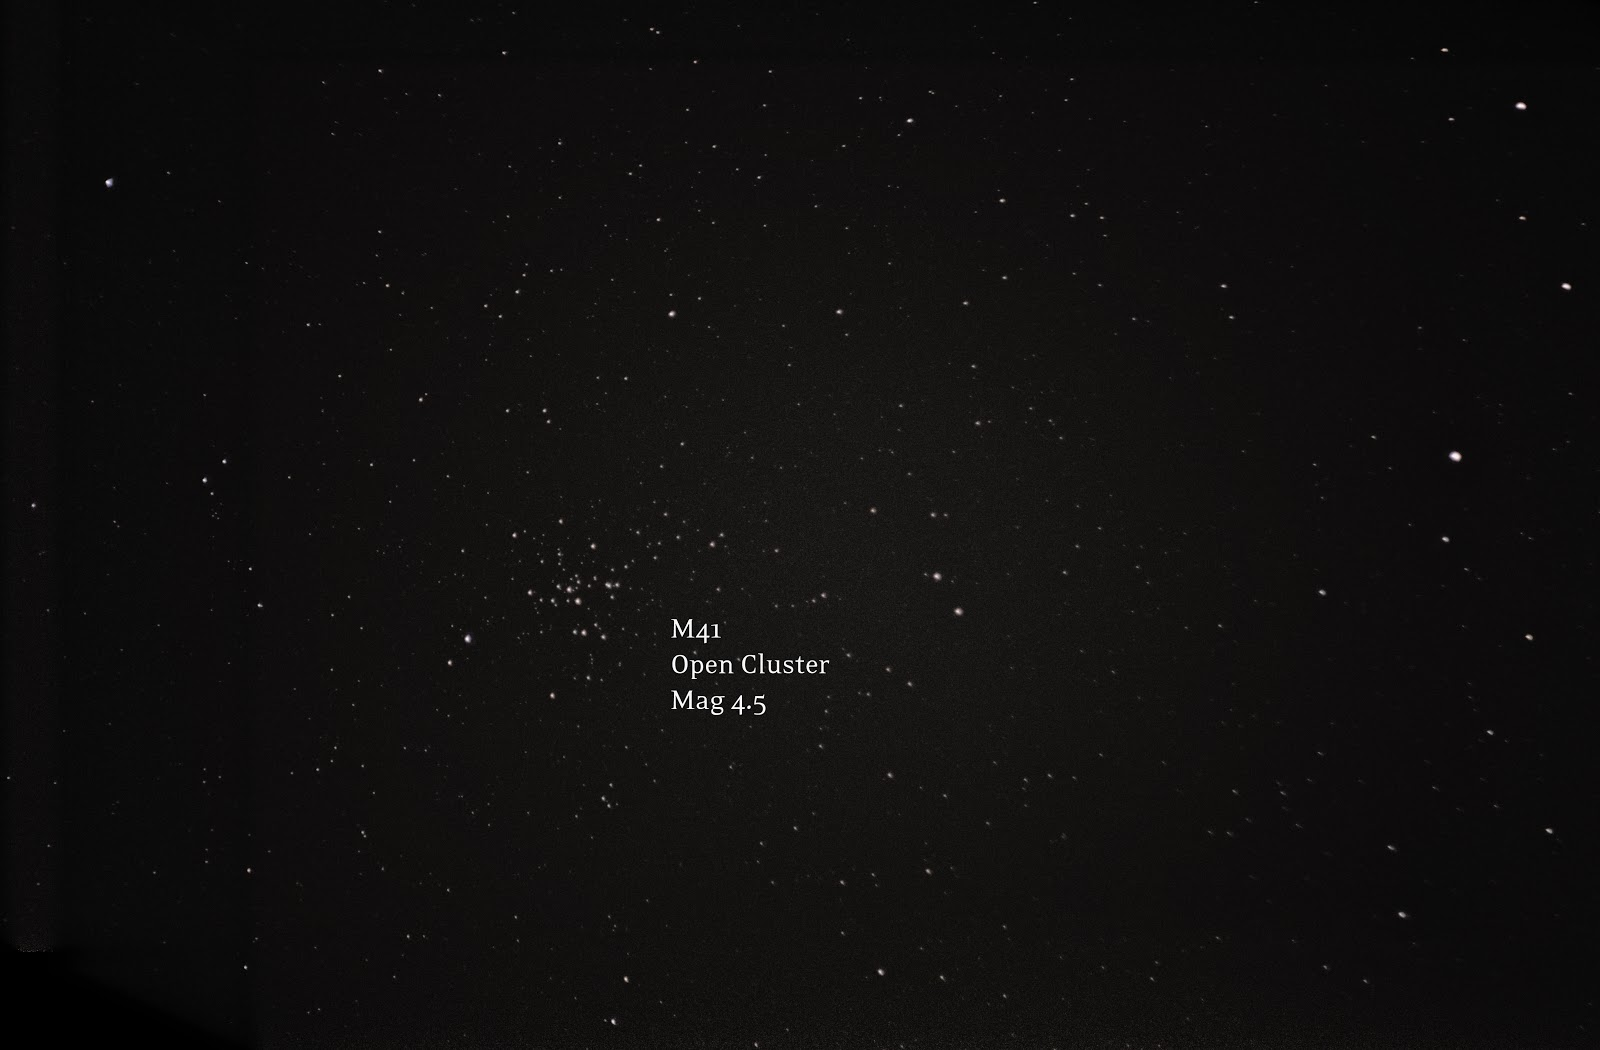 M41, open cluster in Canis Major